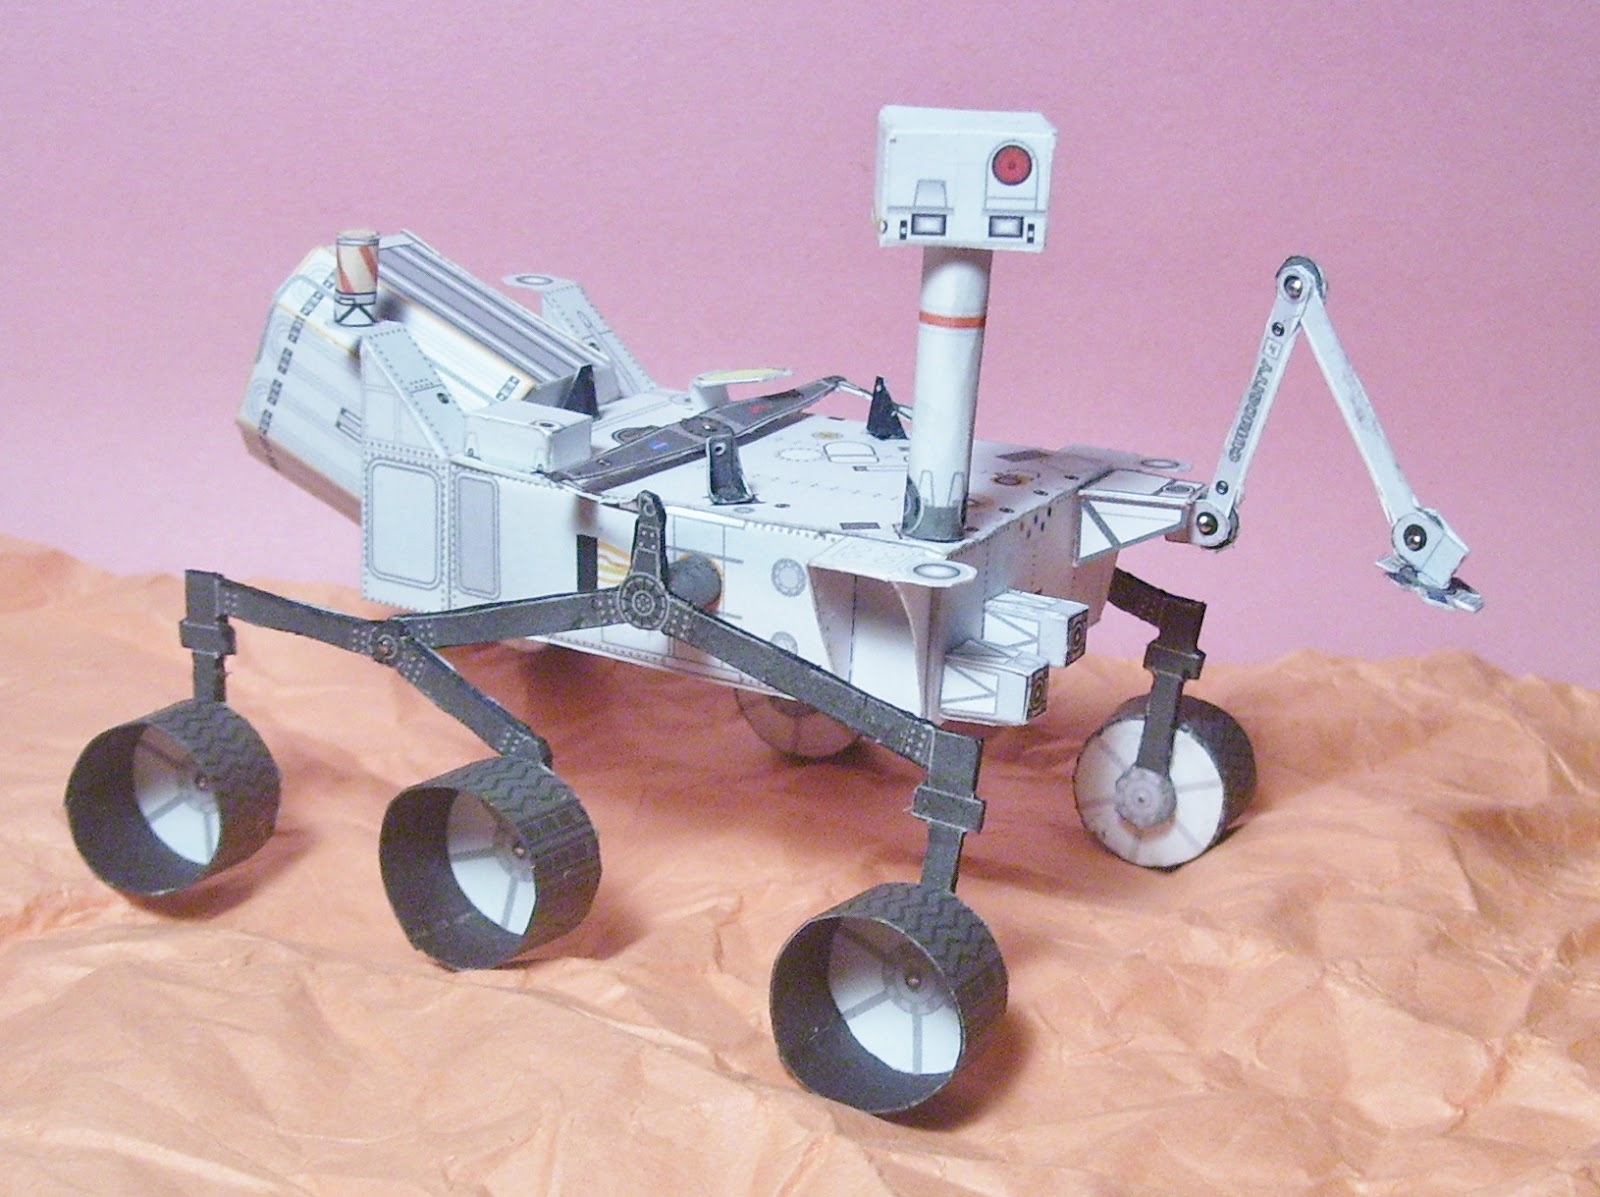 curiosity rover scale model - photo #1